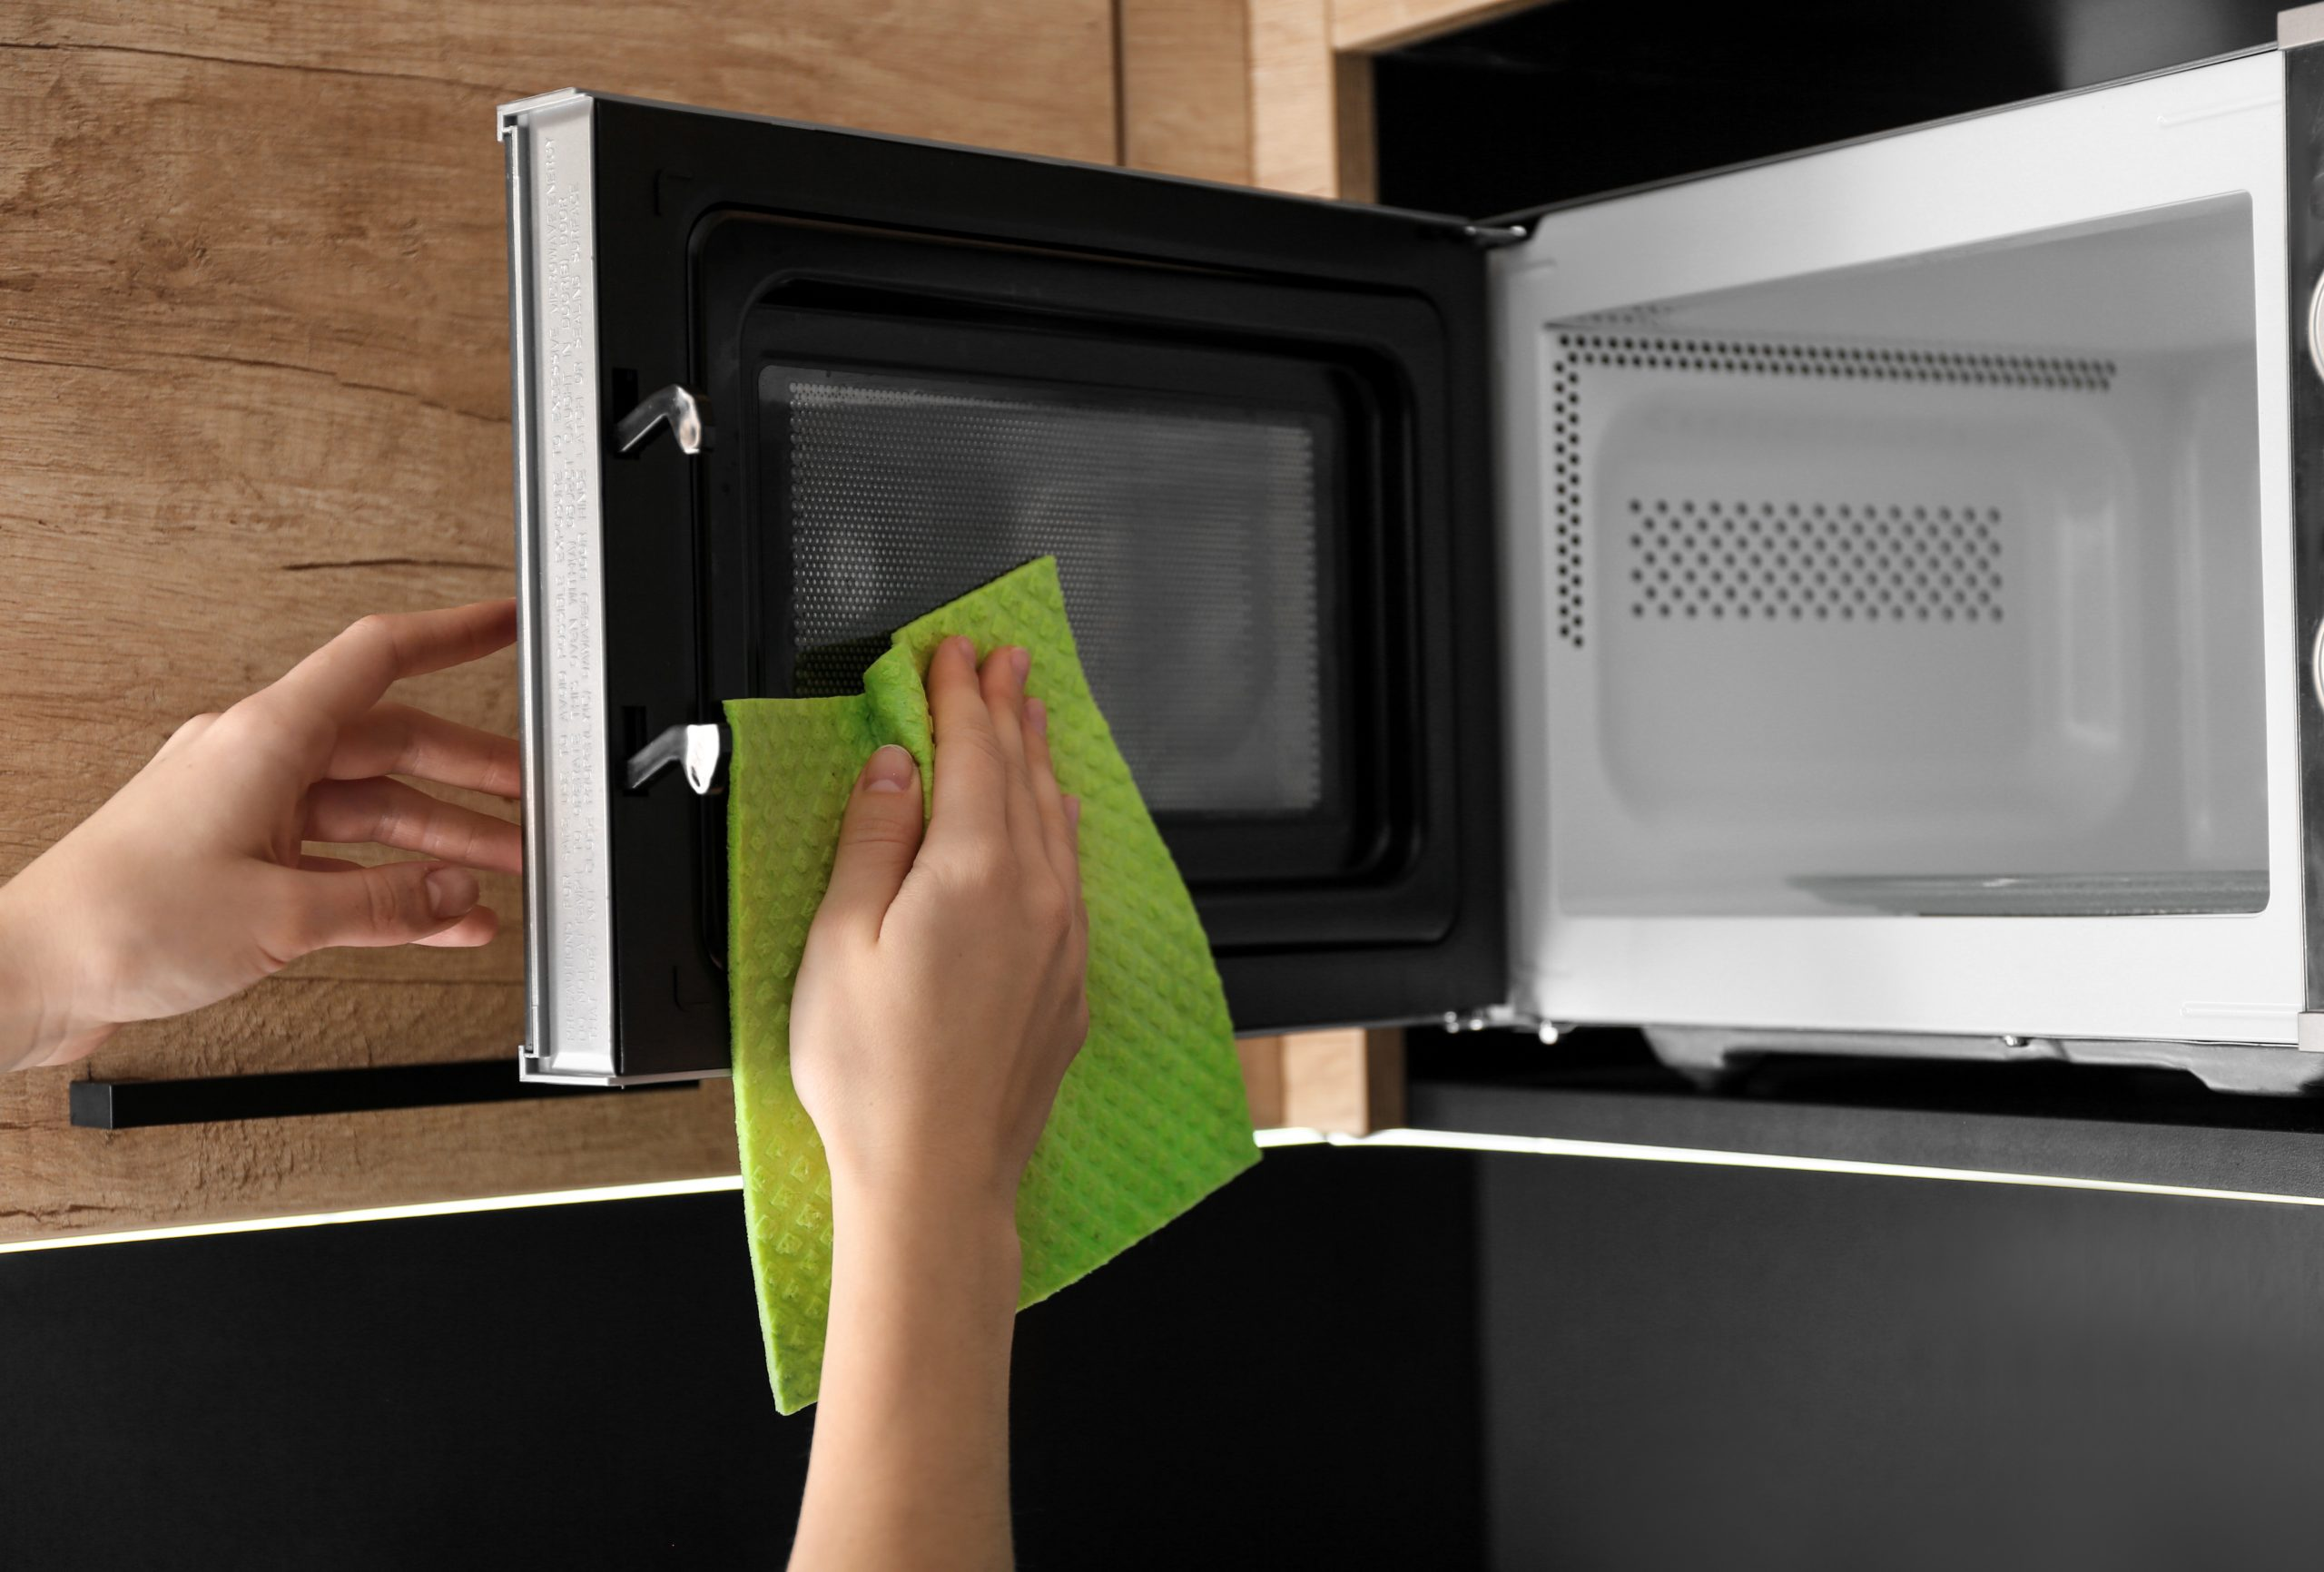 How to clean a microwave: Don't forget to clean the inside of your microwave's door!